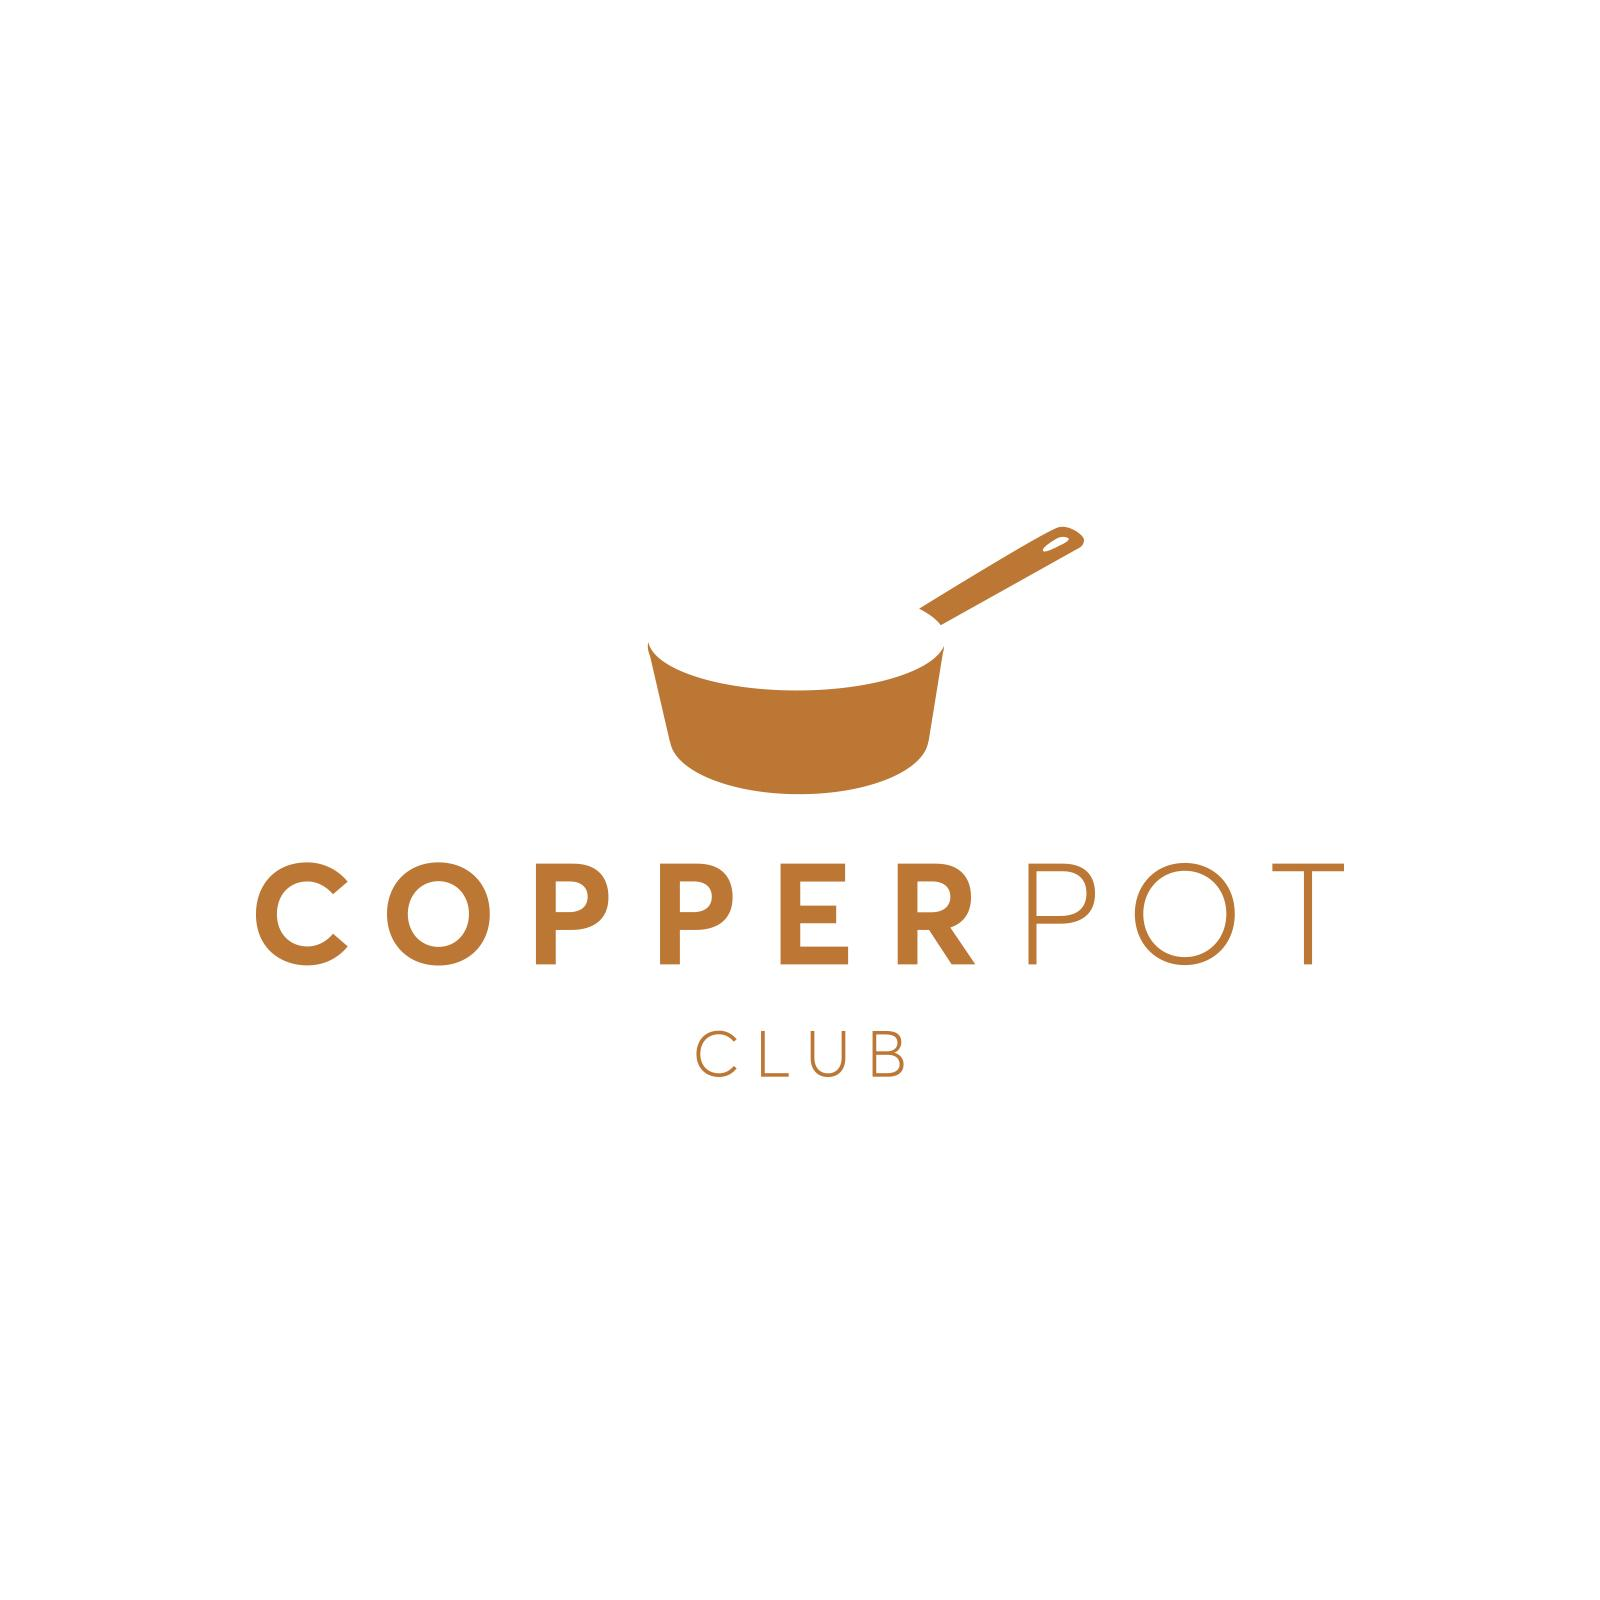 Copper Pot Club Logo